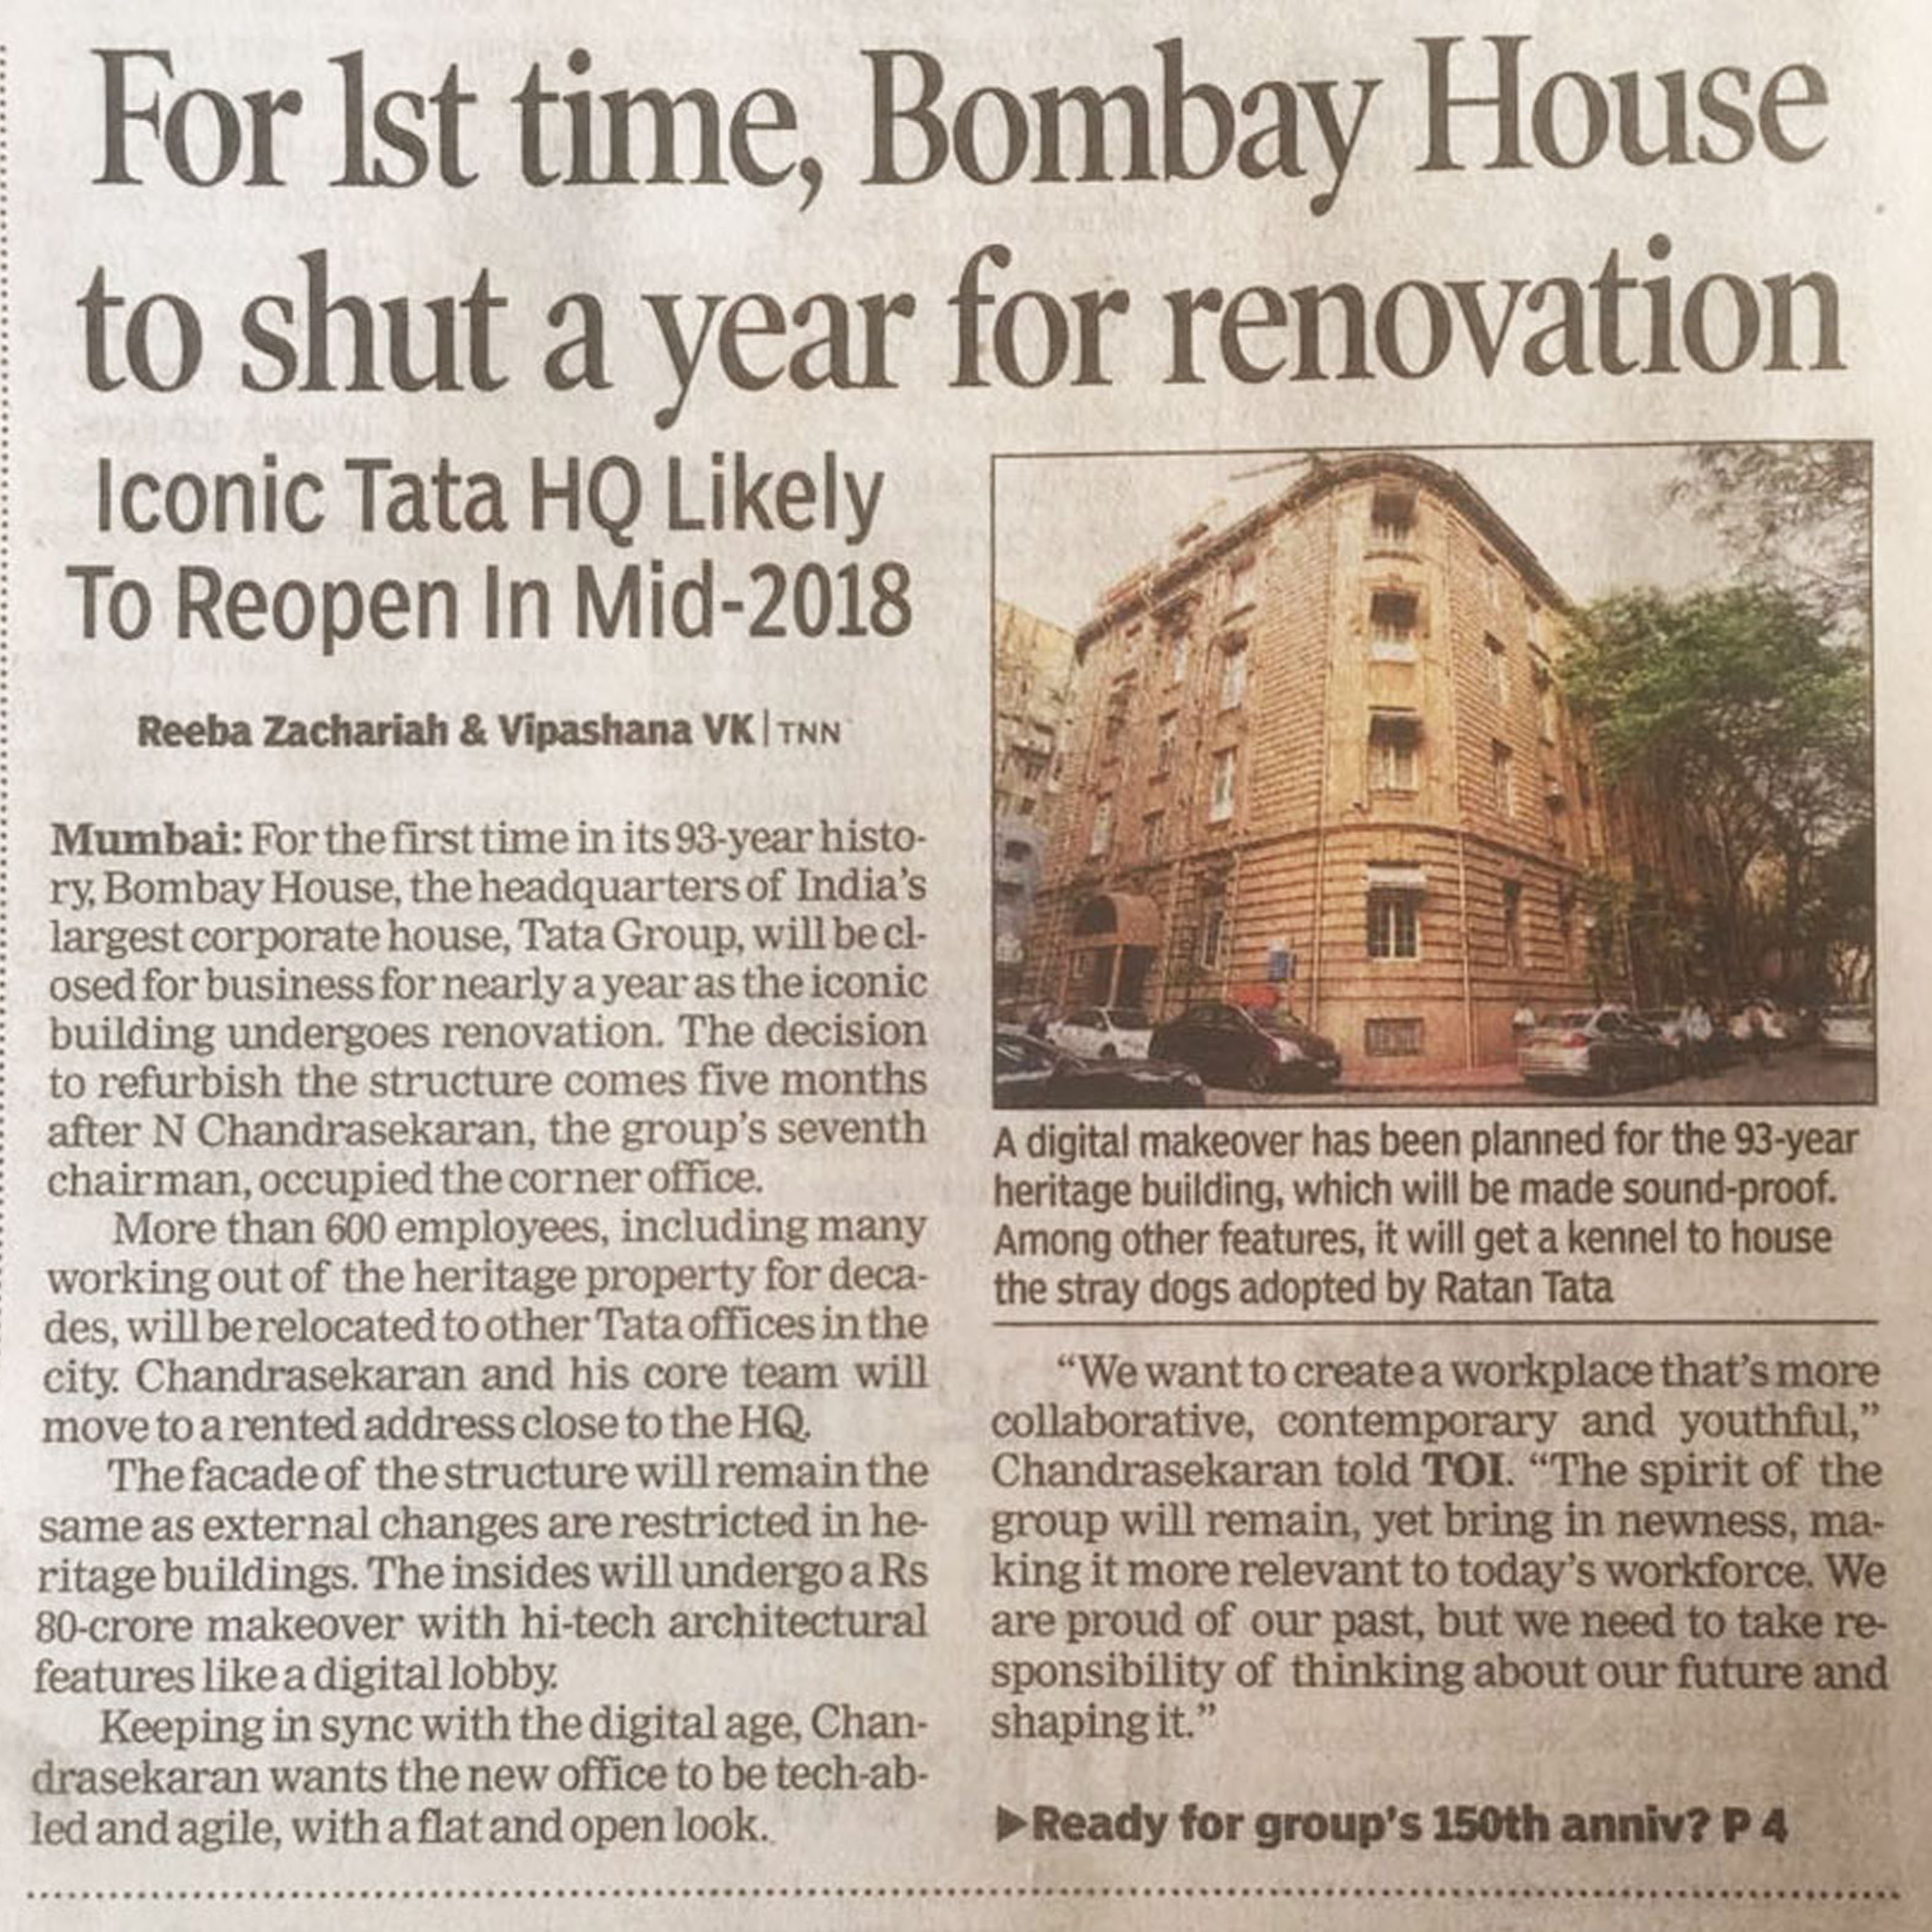 The Times of India - For 1st time, Bombay House to shut a year for renovation - 6 August 2017